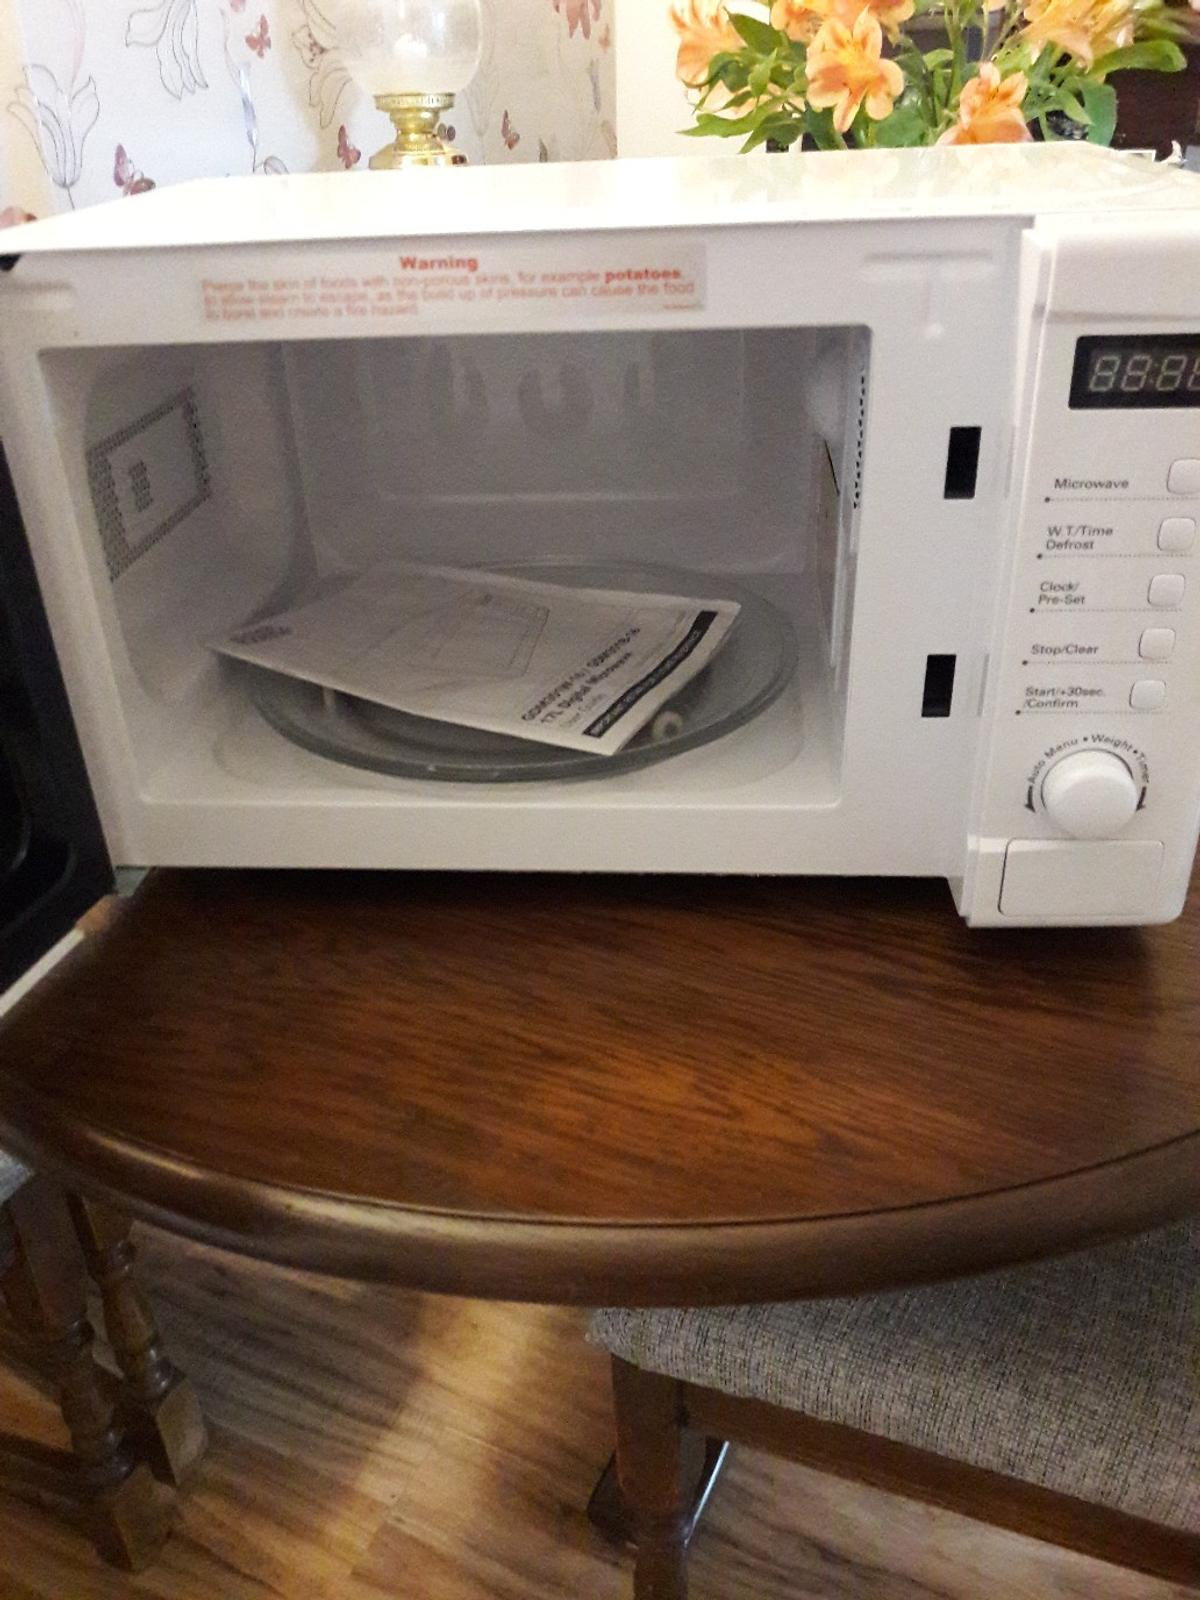 Microwave In Cf48 Pant For 25 00